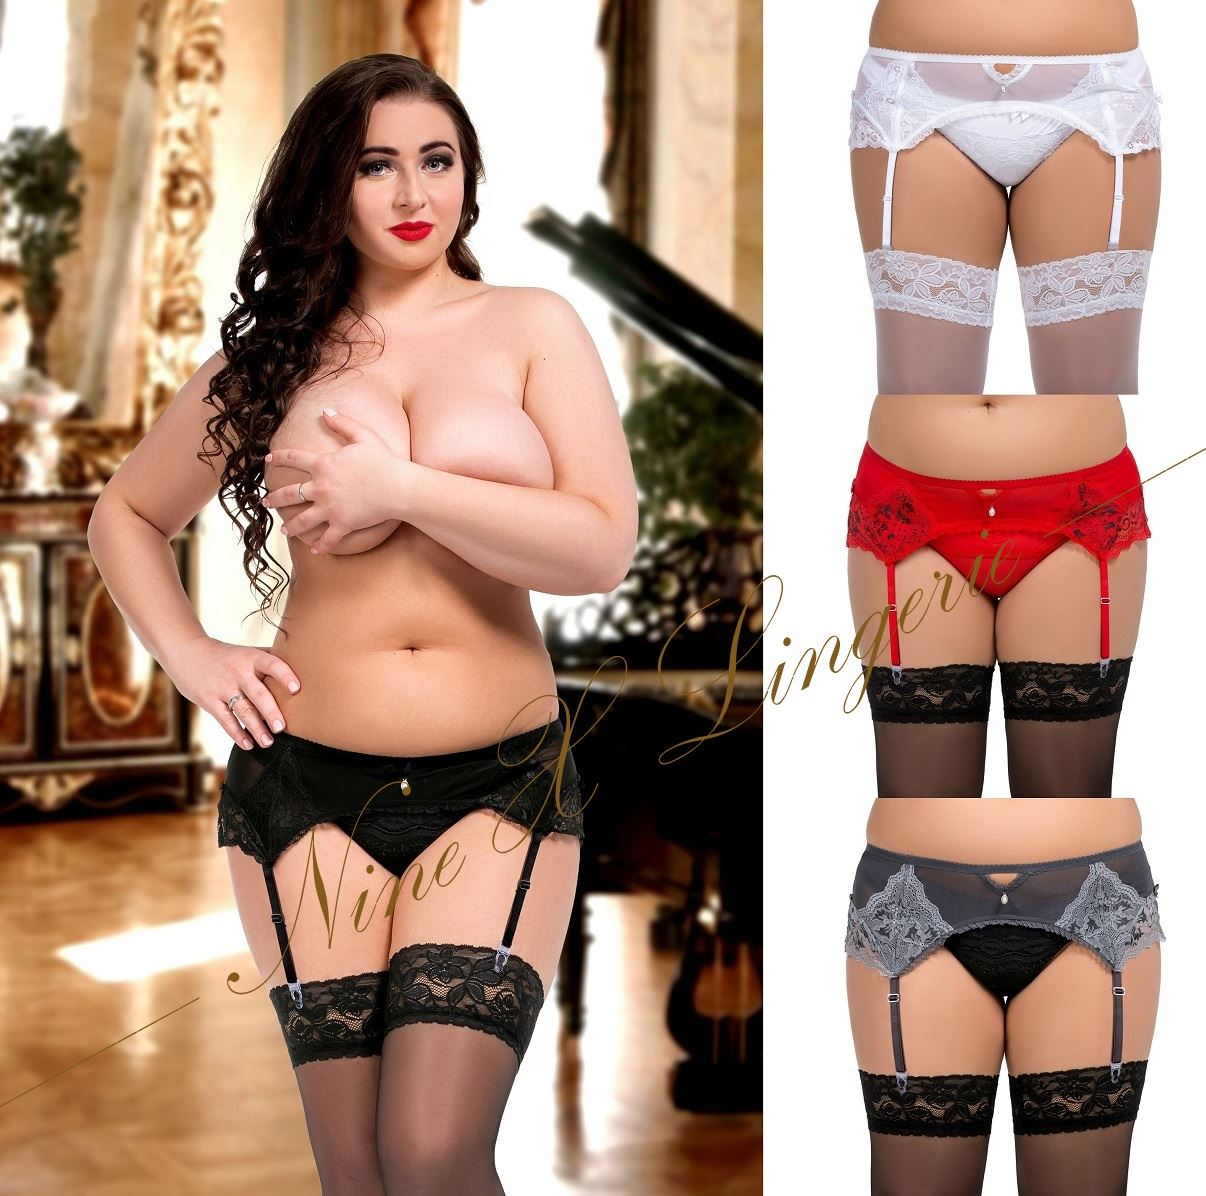 751a7e839f7 Details about Nine X Plus Size S-8XL 8-28 Sexy Lace & Mesh Garter Belt  Suspender